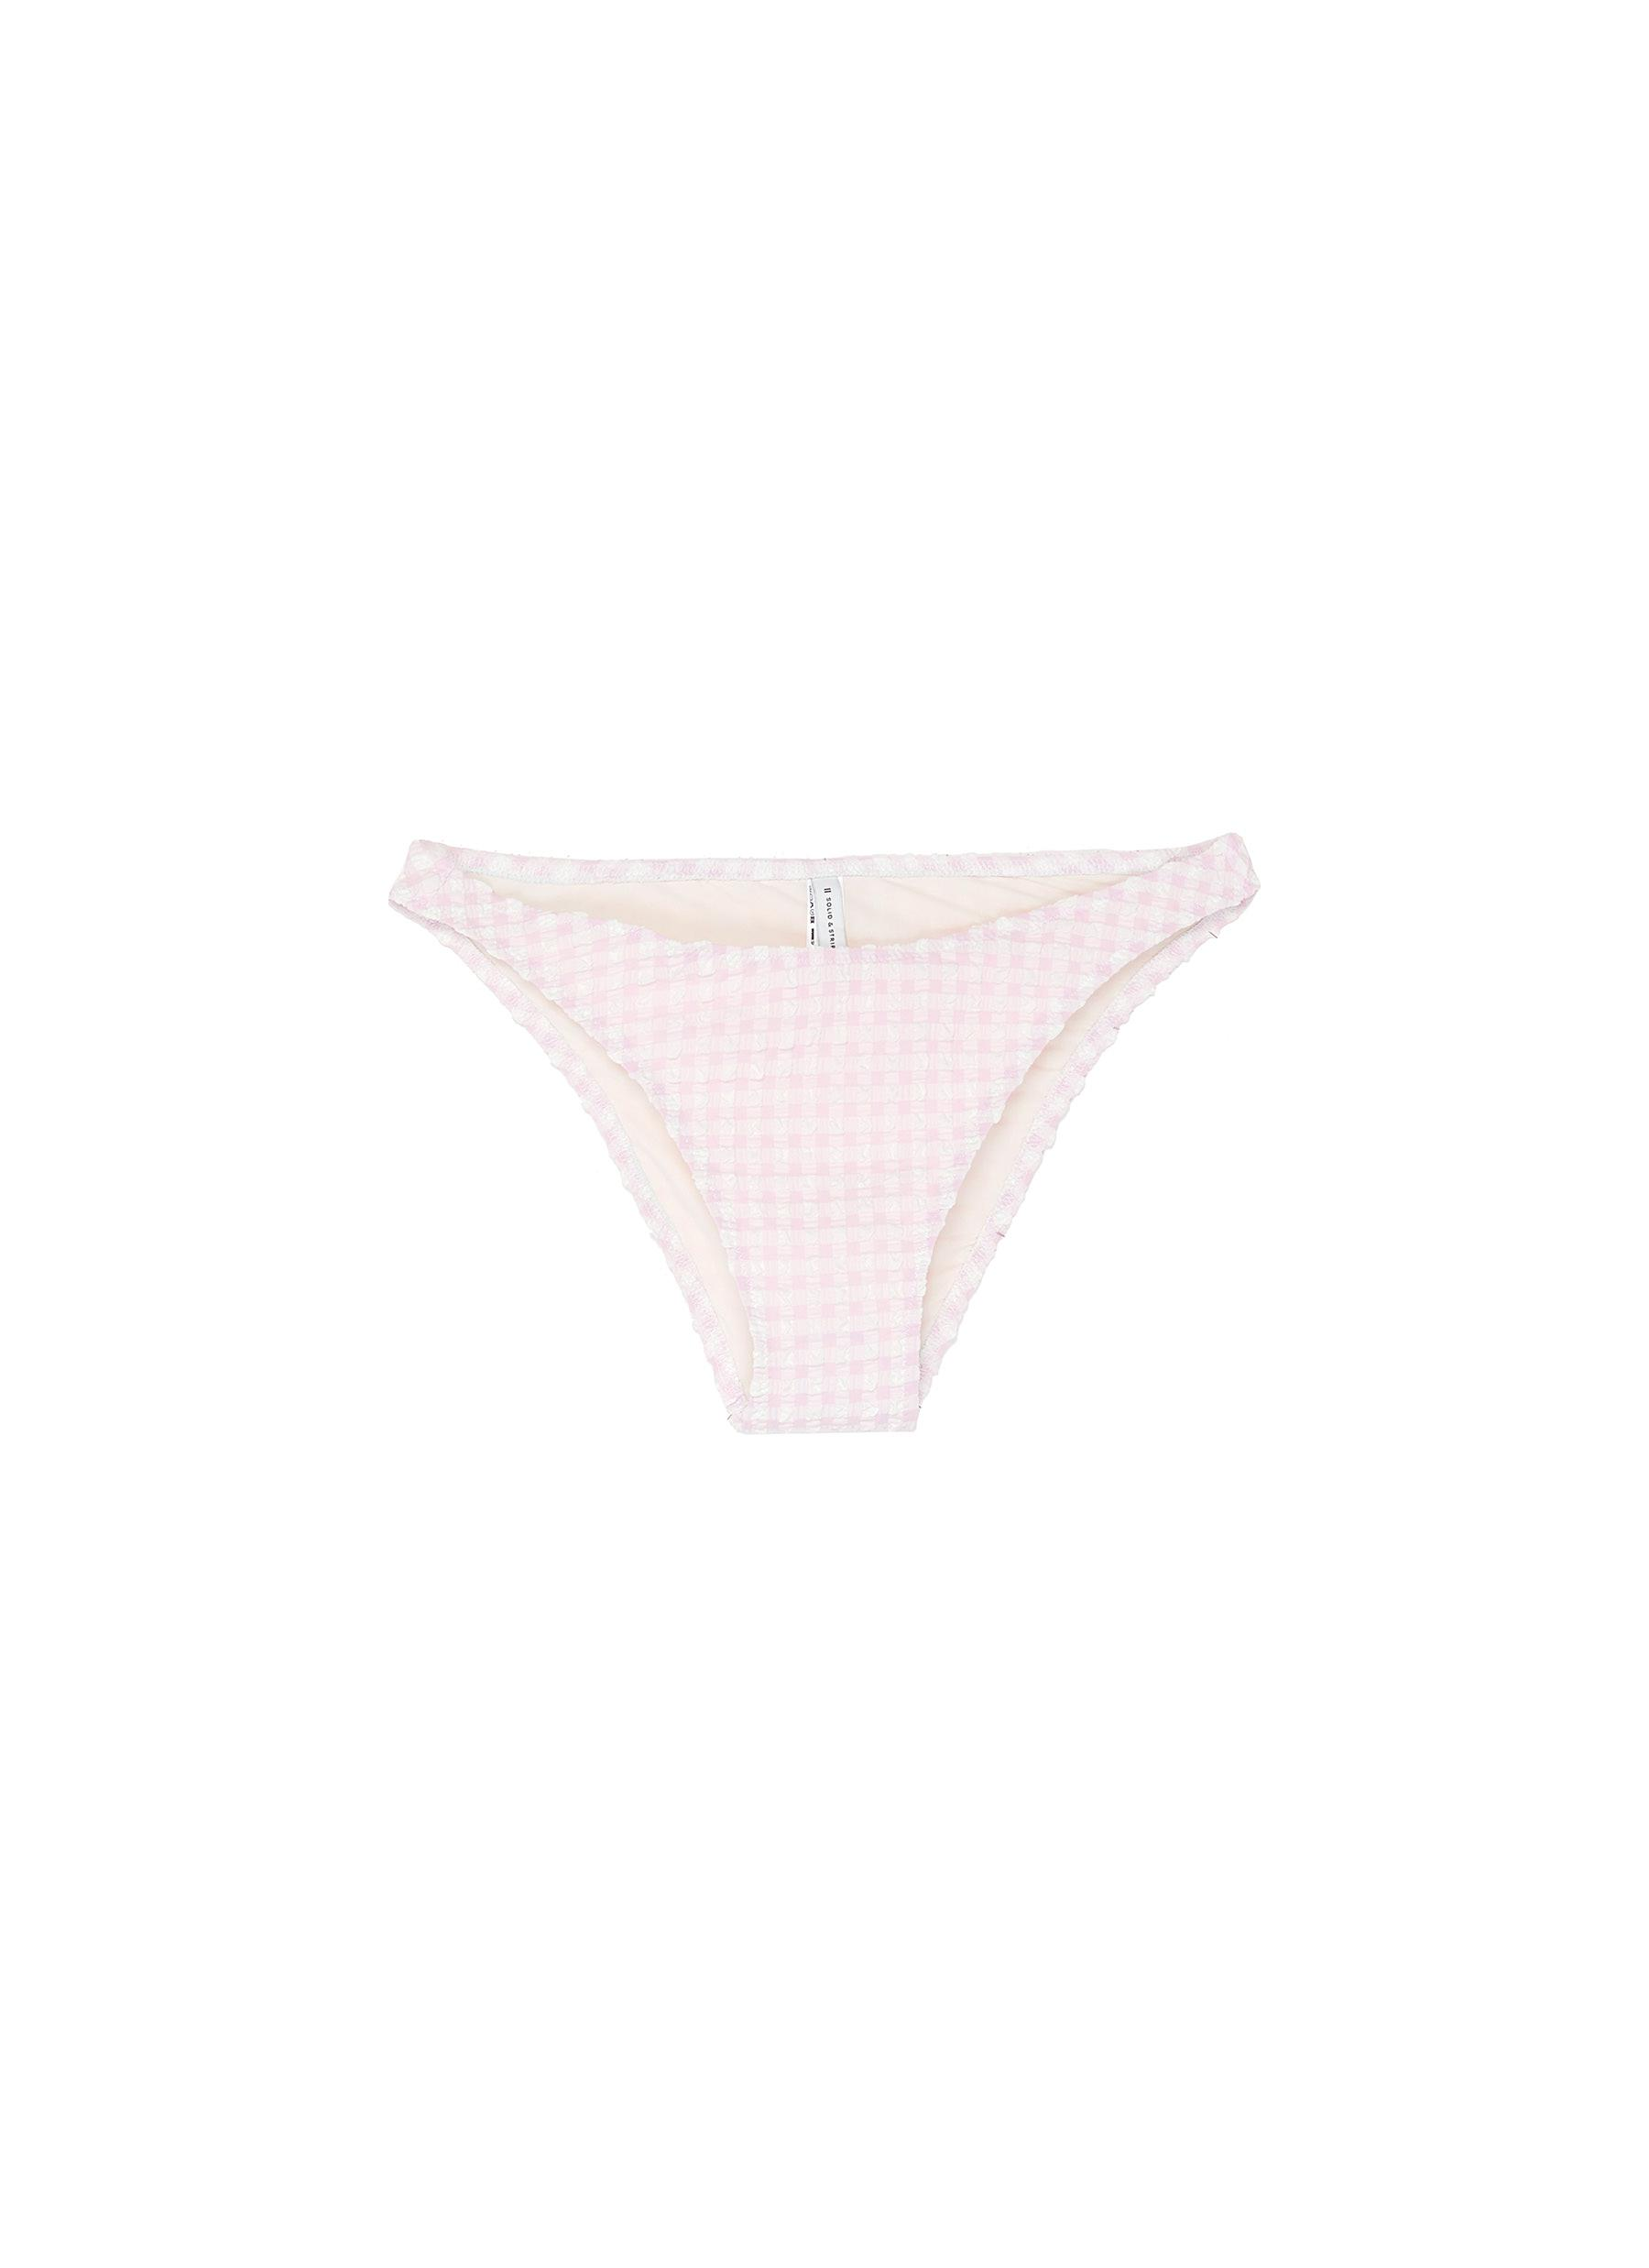 The Eloise gingham check seersucker bikini bottoms by Solid & Striped